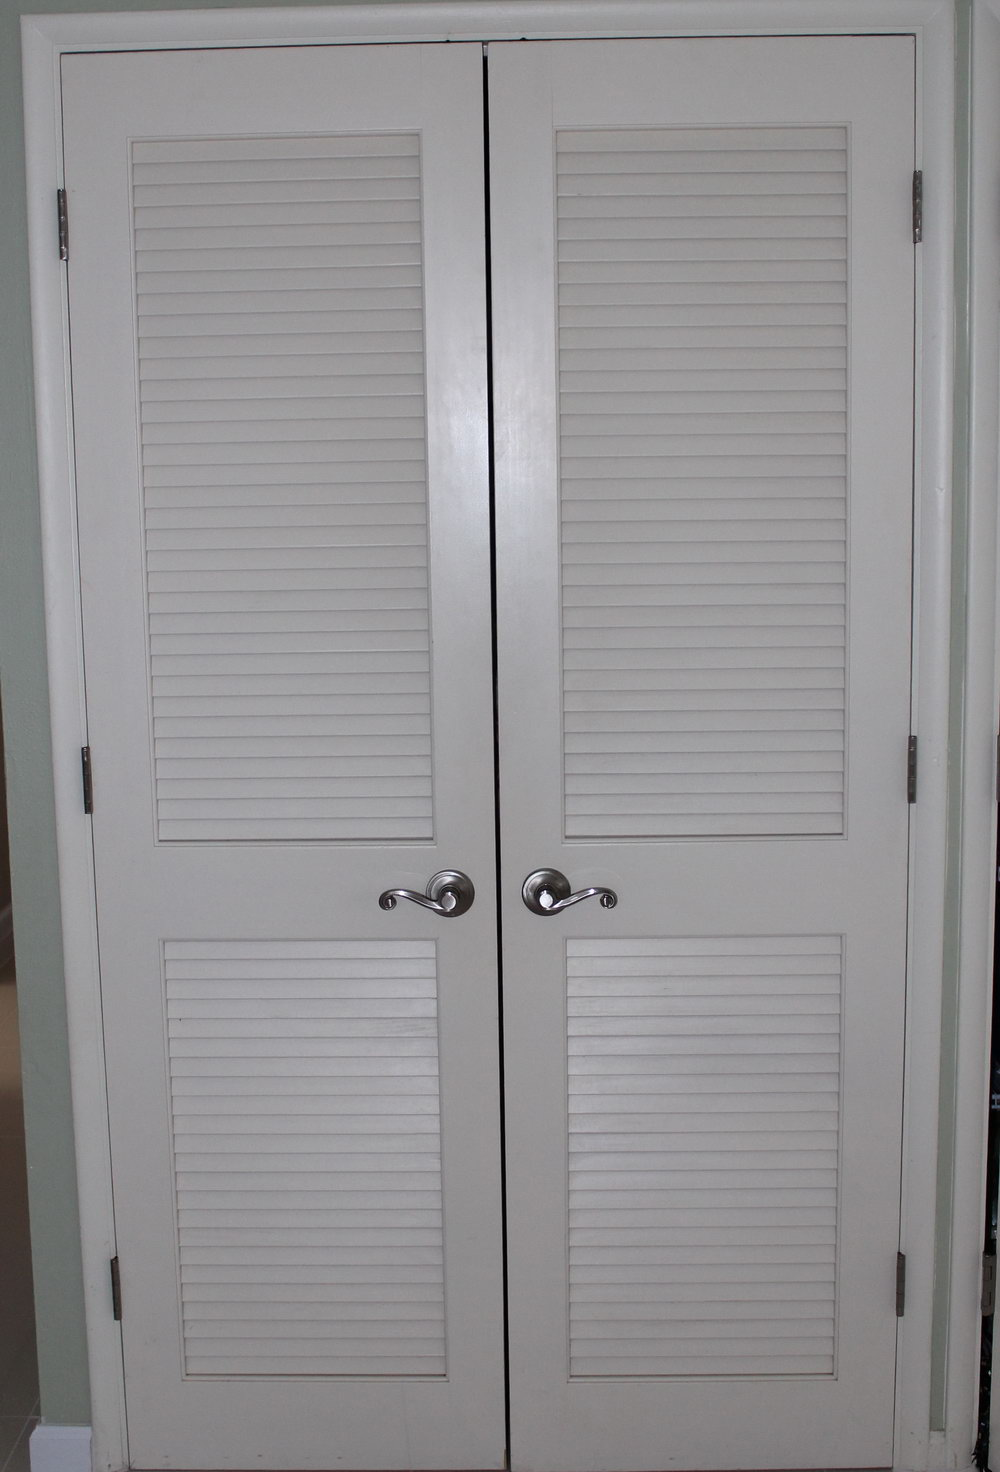 Picture Of A Closet Door